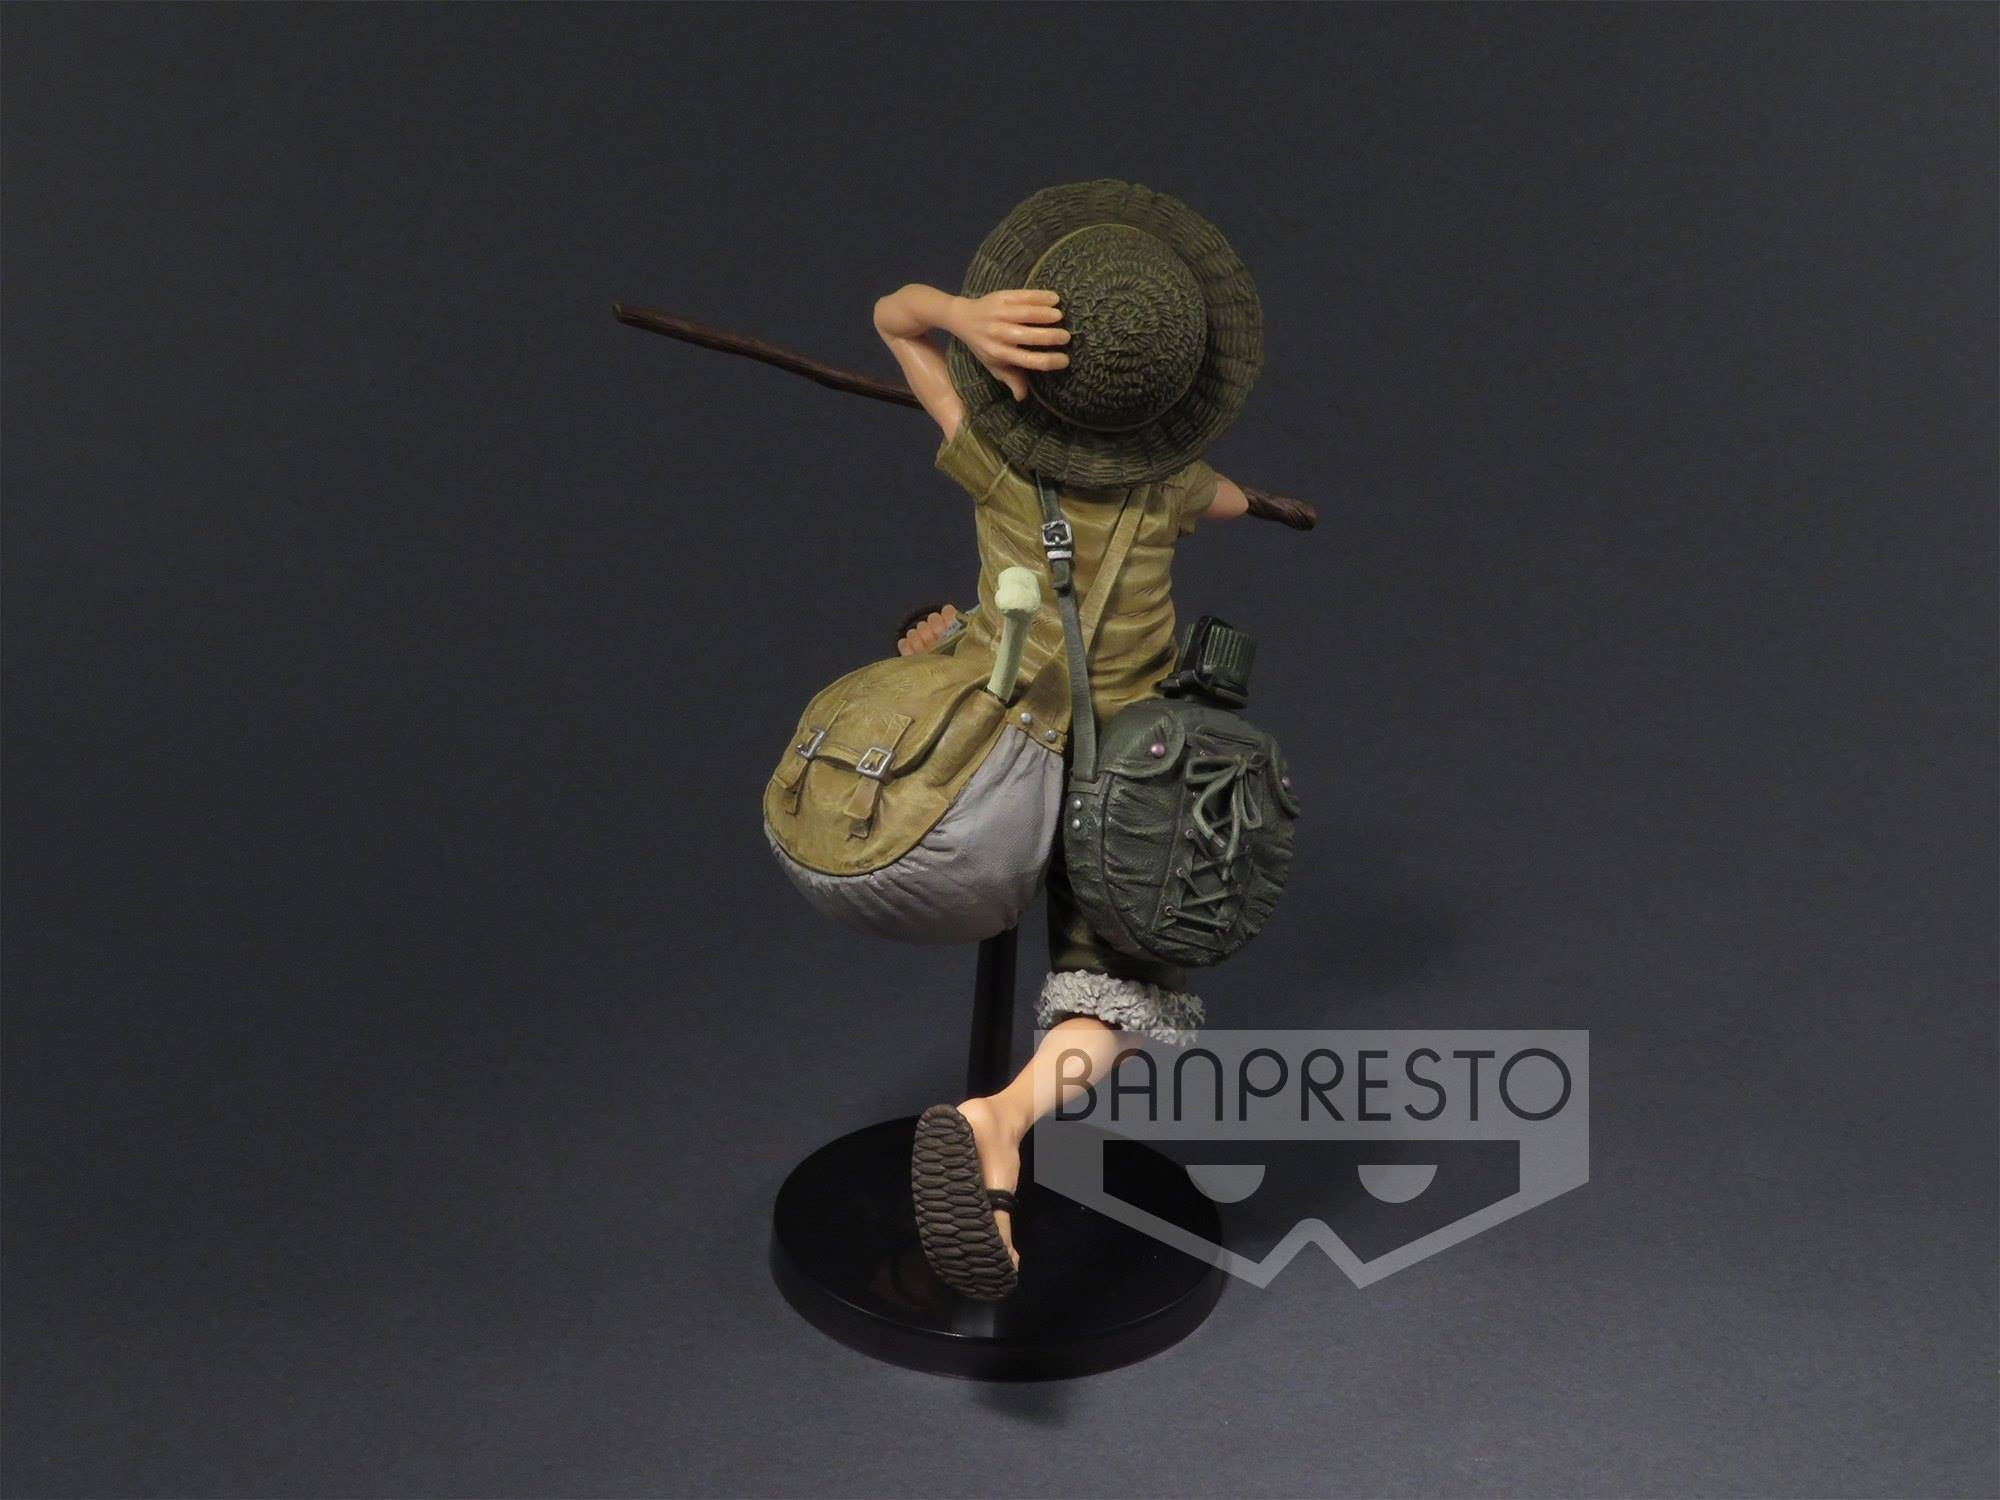 Banpresto - Prize Item 35381 - One Piece Sculptures - Luffy (Army Color Ver.)